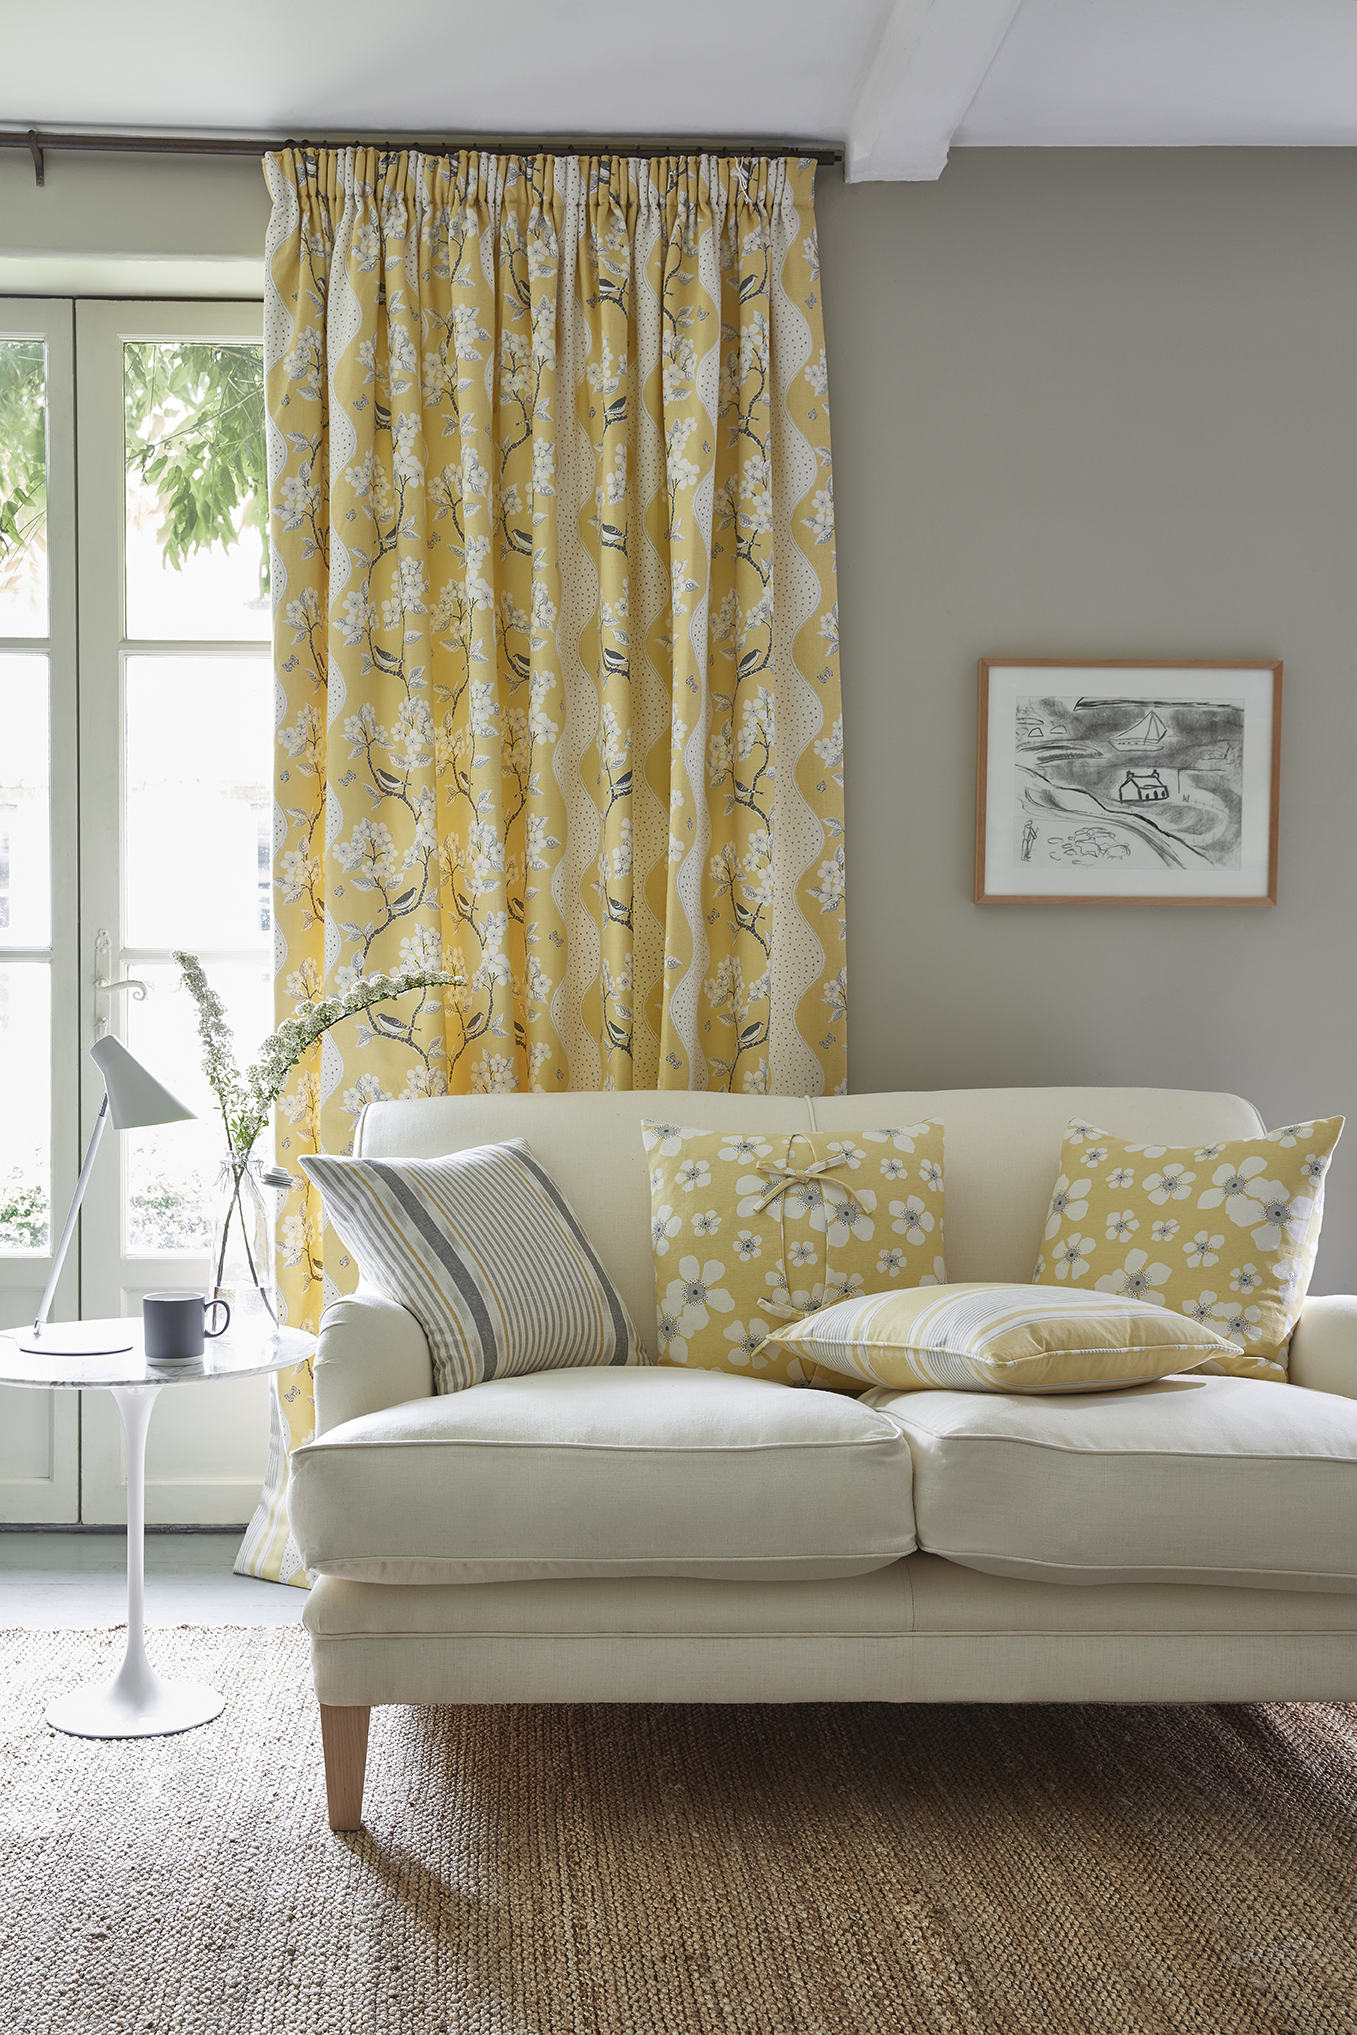 inspirational the wall waiting on design many sliding beige room yellow door this of office flower blinds full or with glass at decorated modern vase table and curtain slding large size pictures decoration curtains using color doors round blind books for